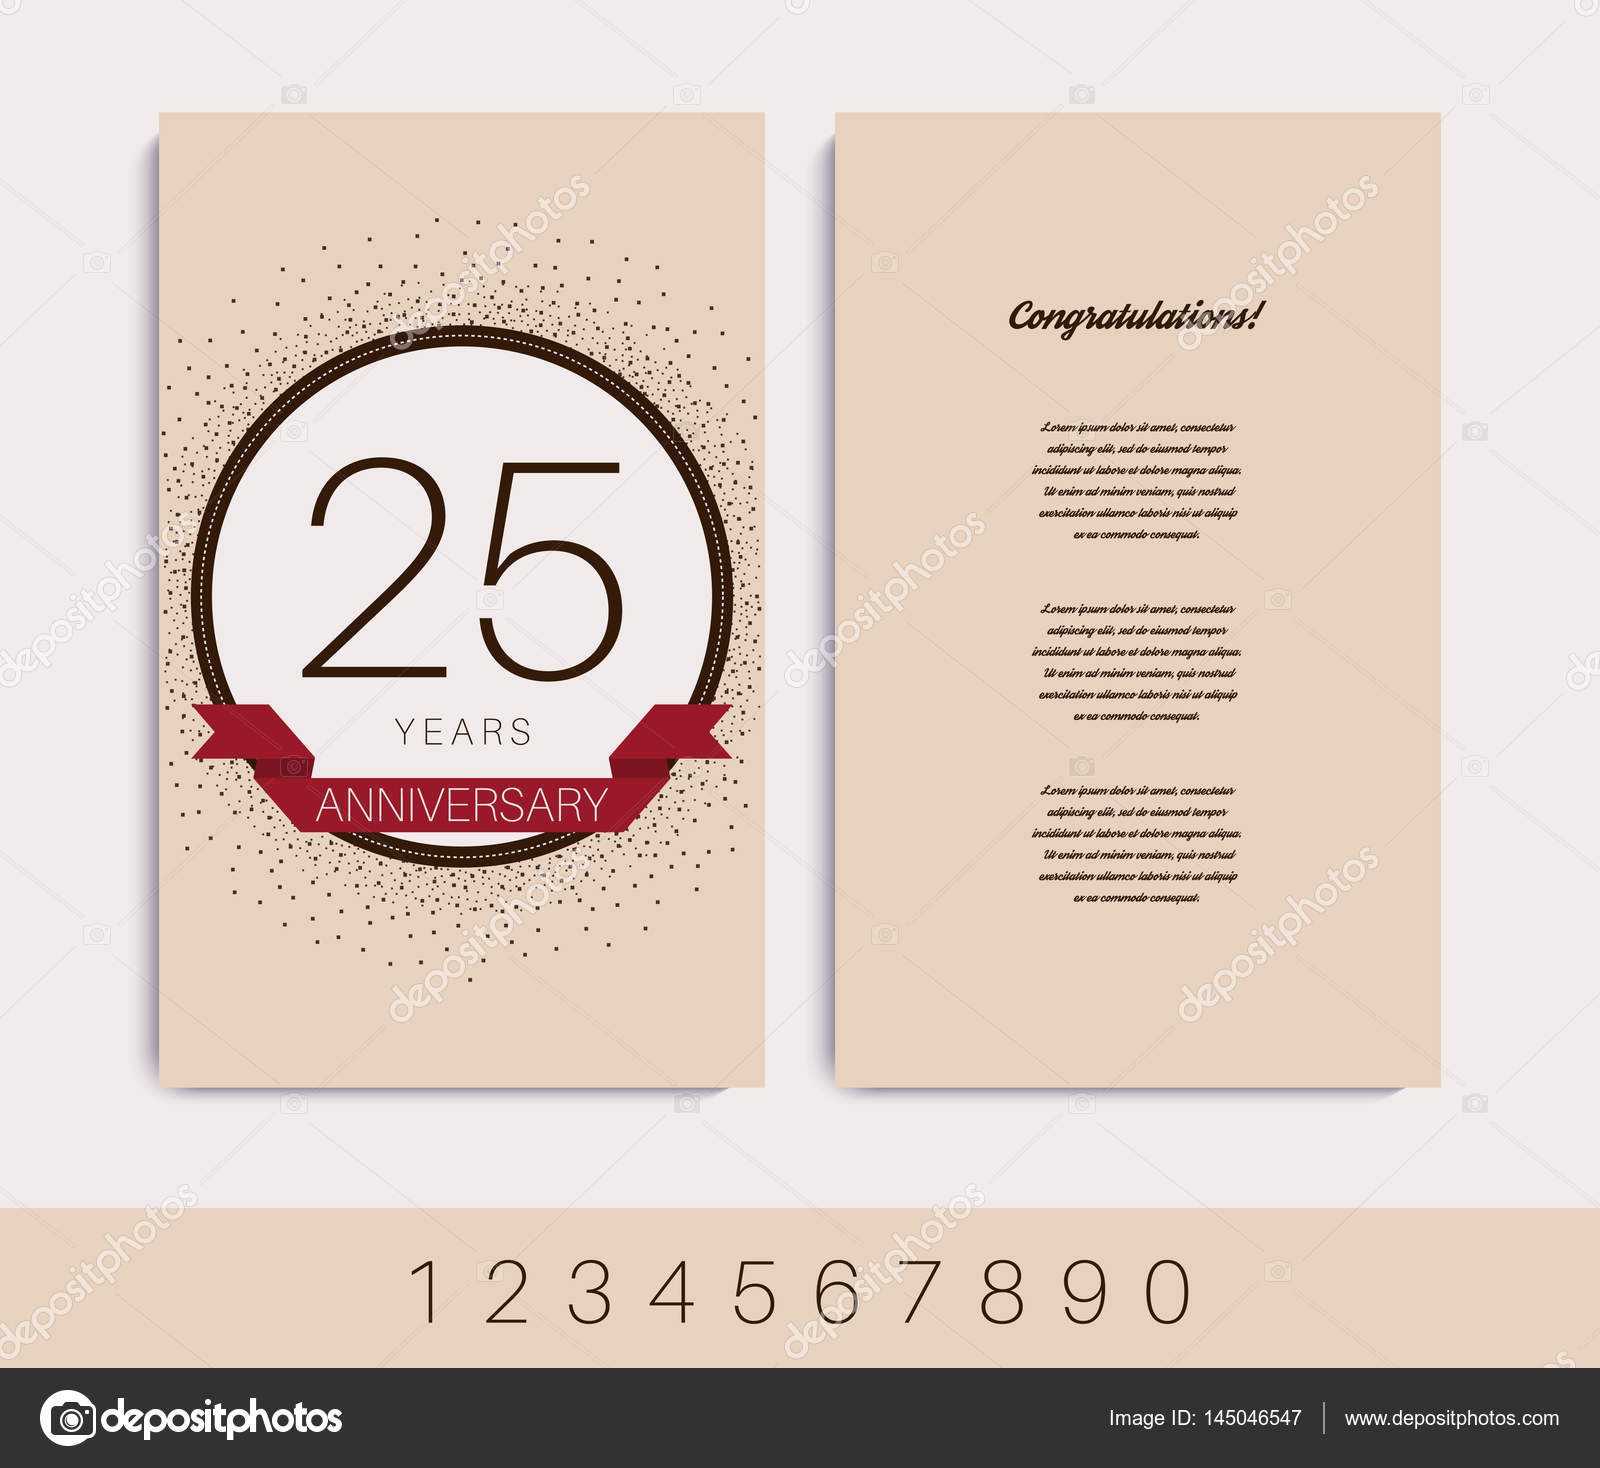 Anniversary invitationgreeting card stock vector aieps 145046547 anniversary invitationgreeting card vector illustration vector by aieps stopboris Images